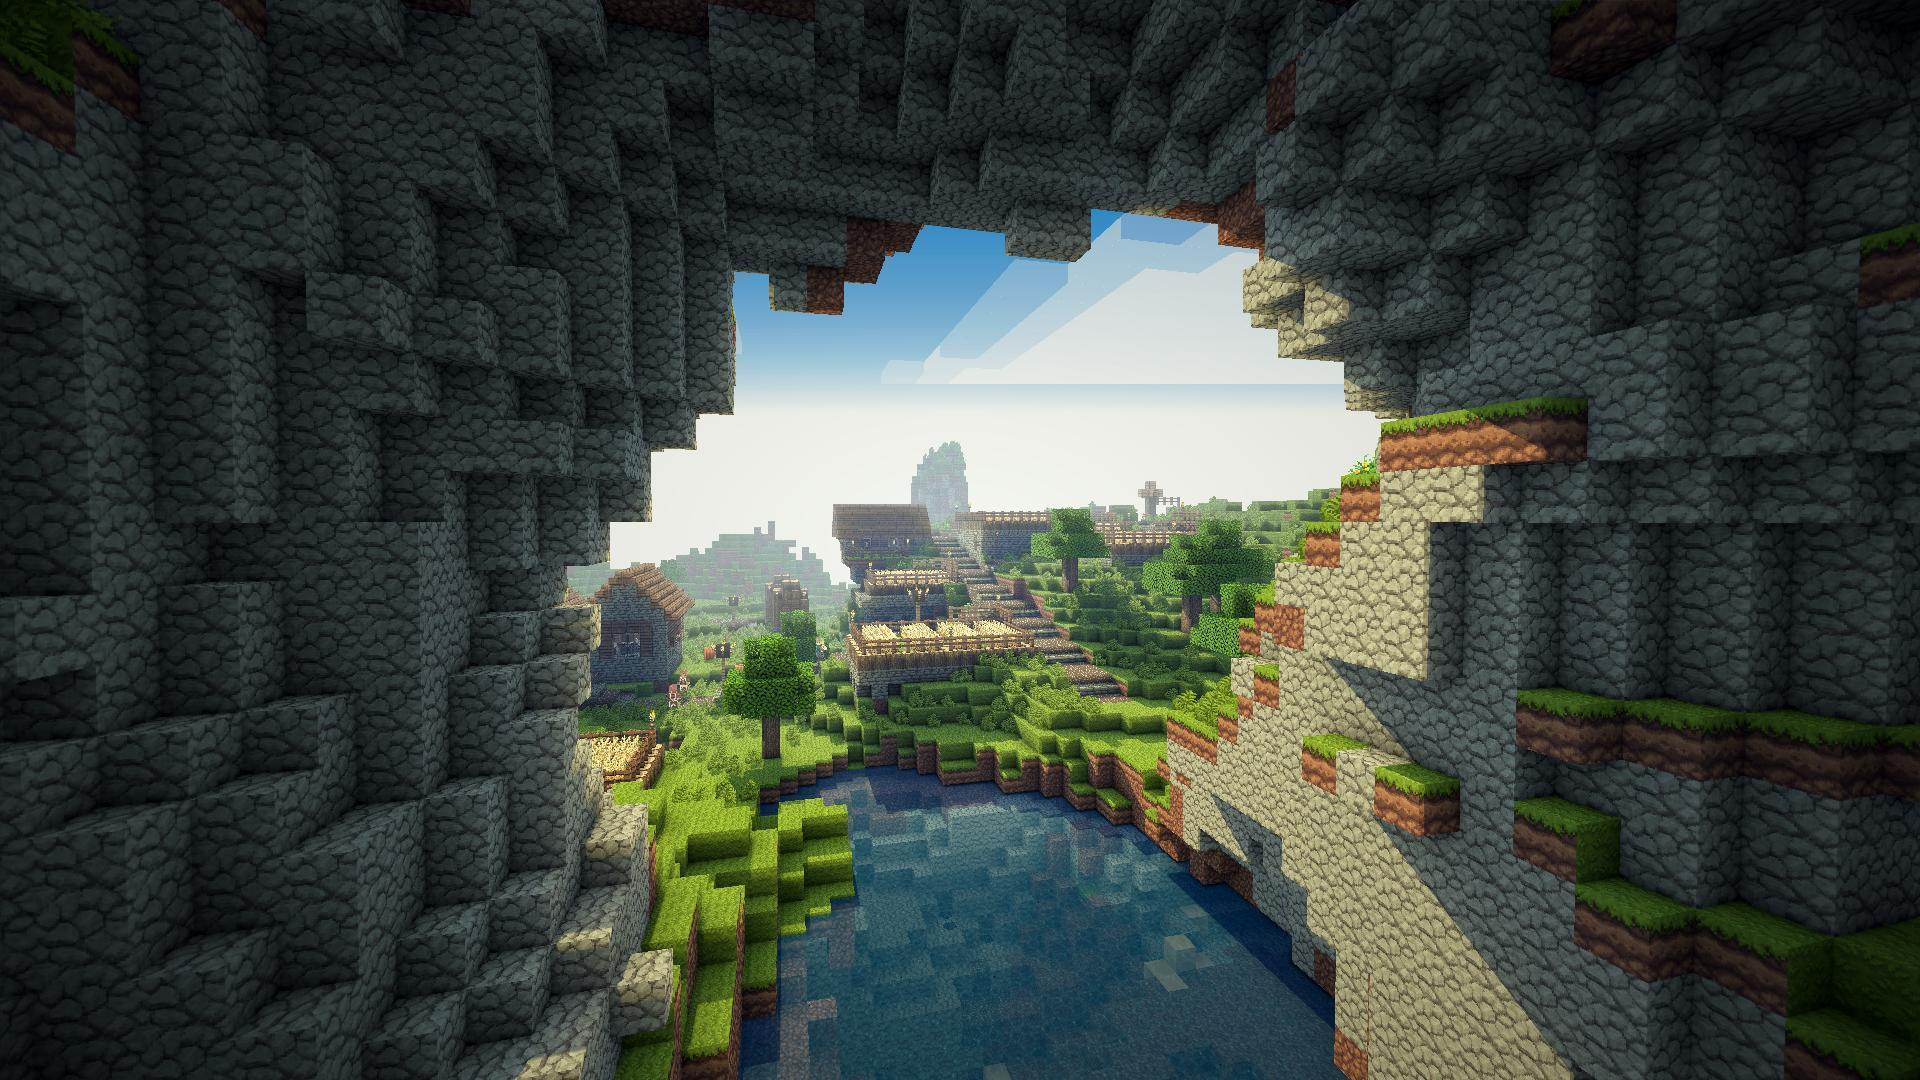 Minecraft Wallpapers Herobrine 20 Cool Wallpapers 1920x1080 HD